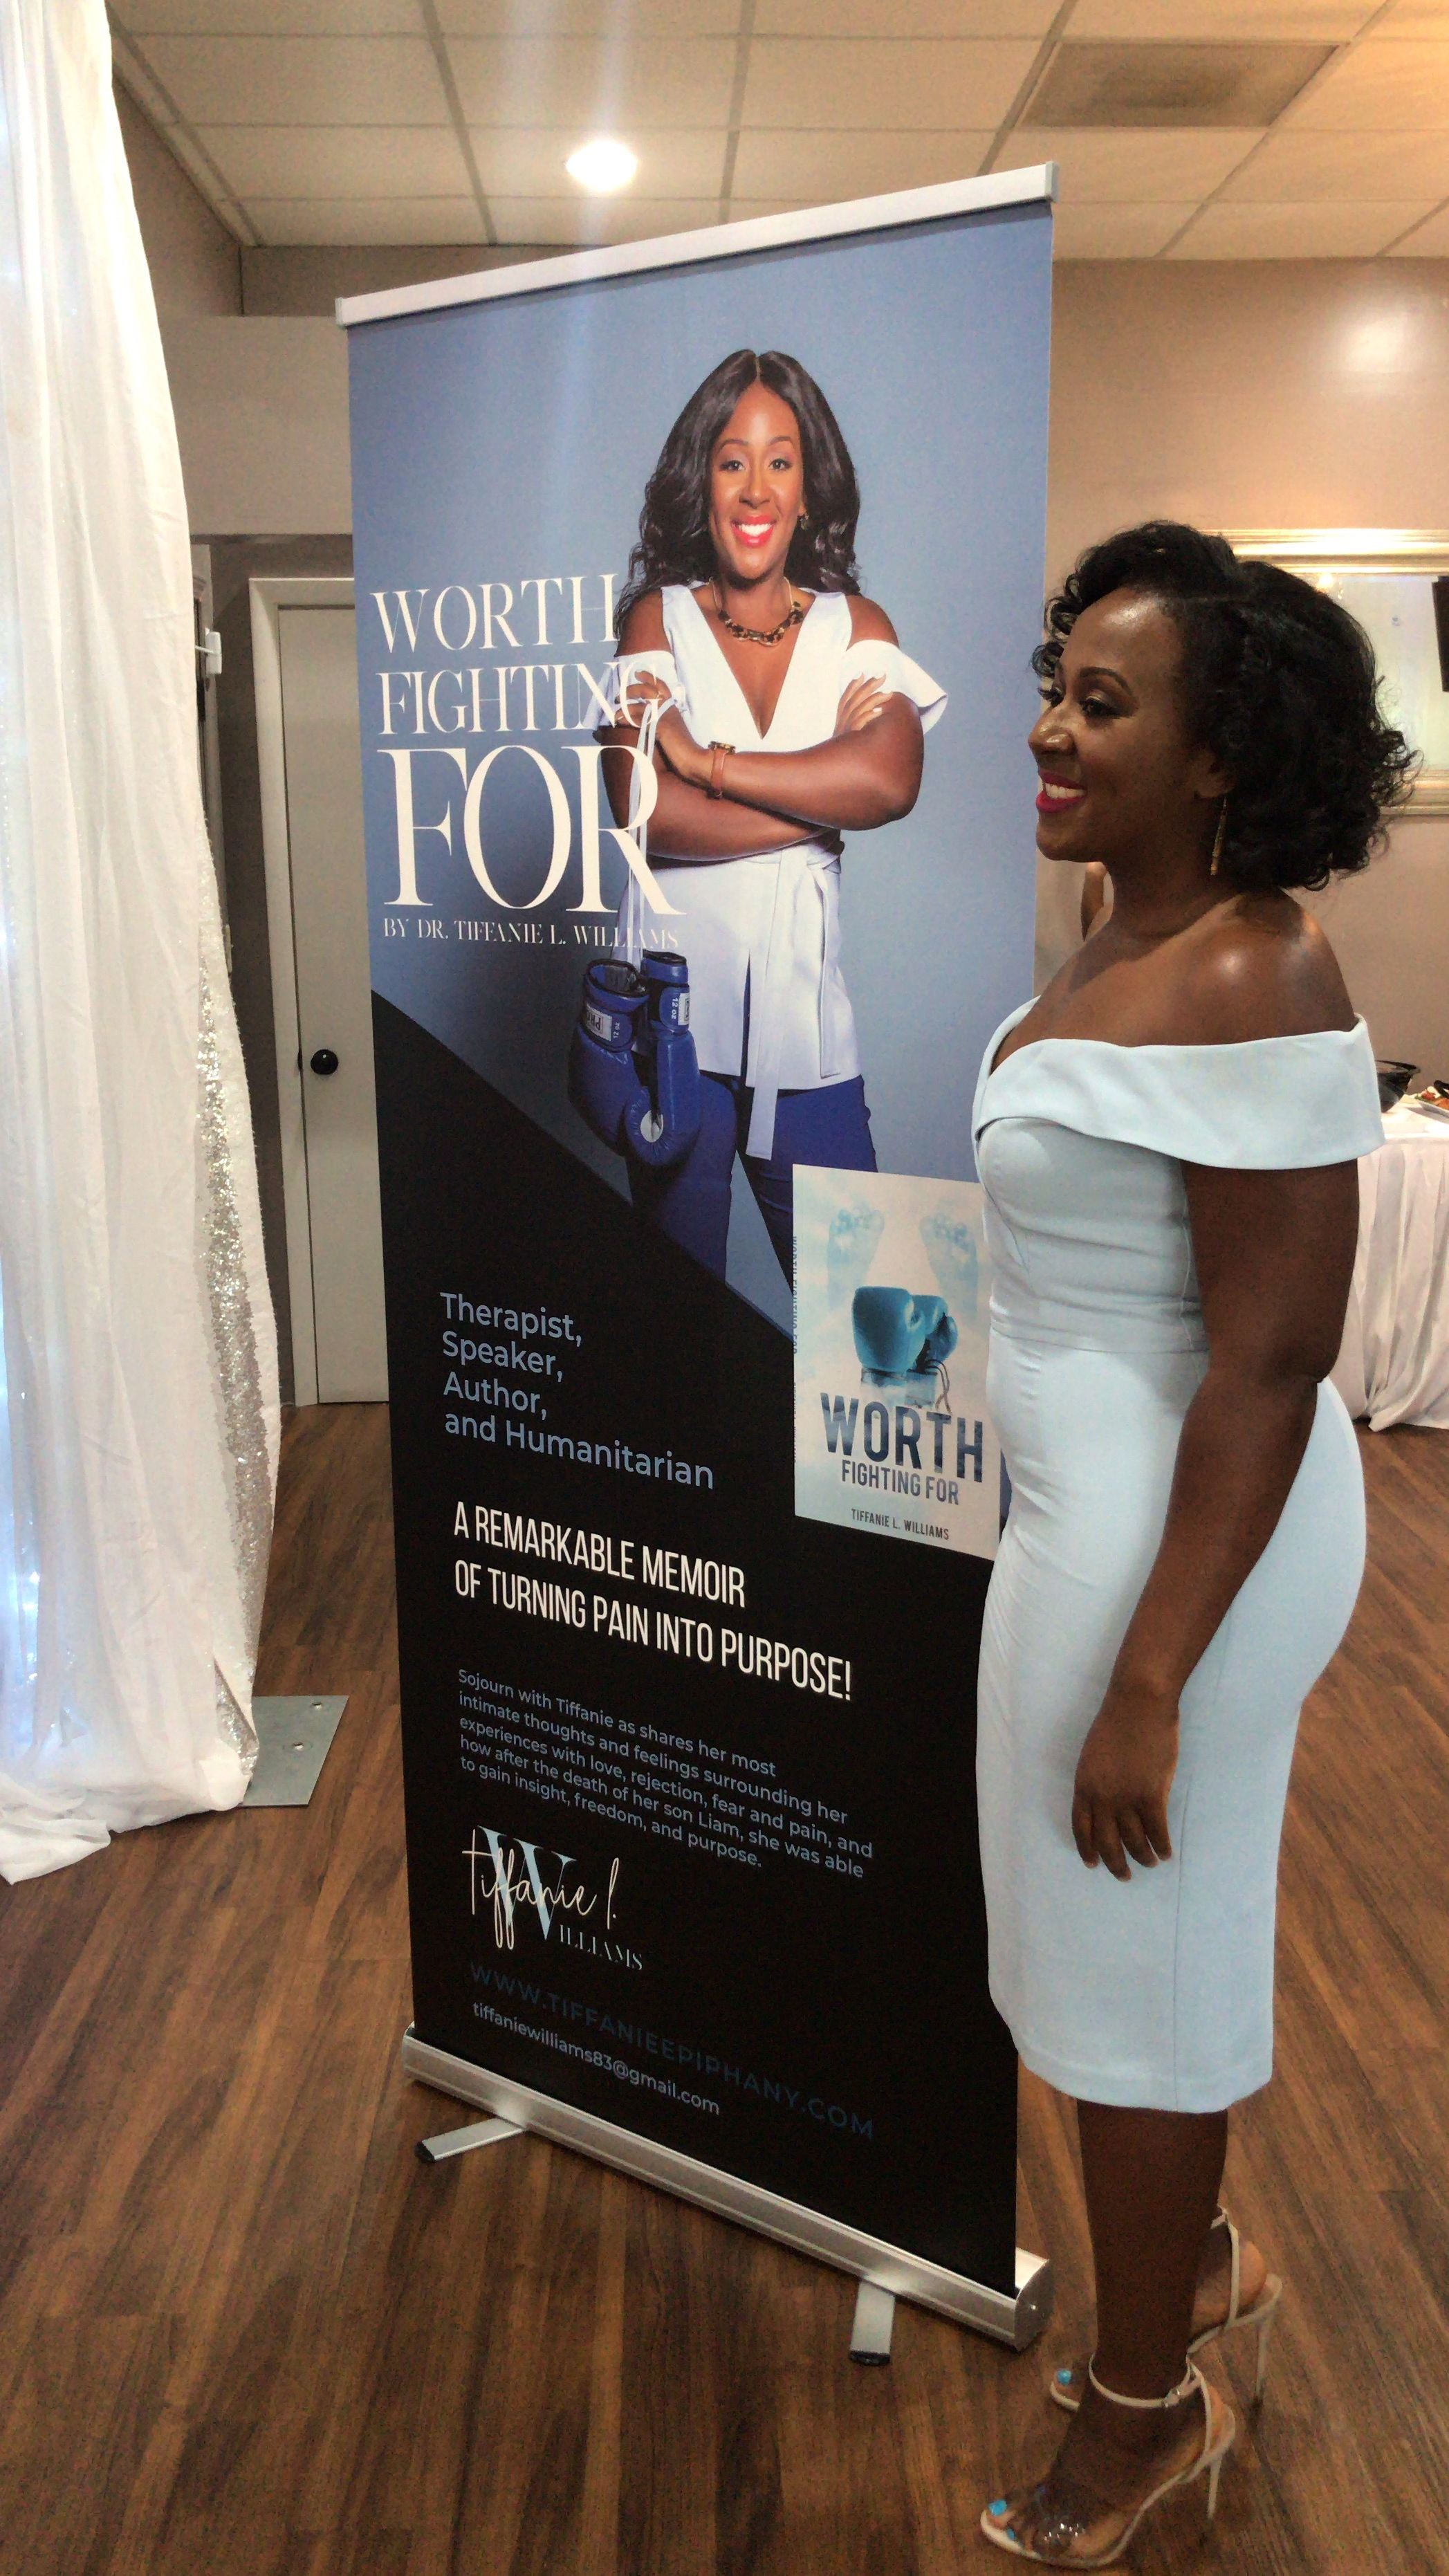 The beautiful author taking photos in front of her banner!